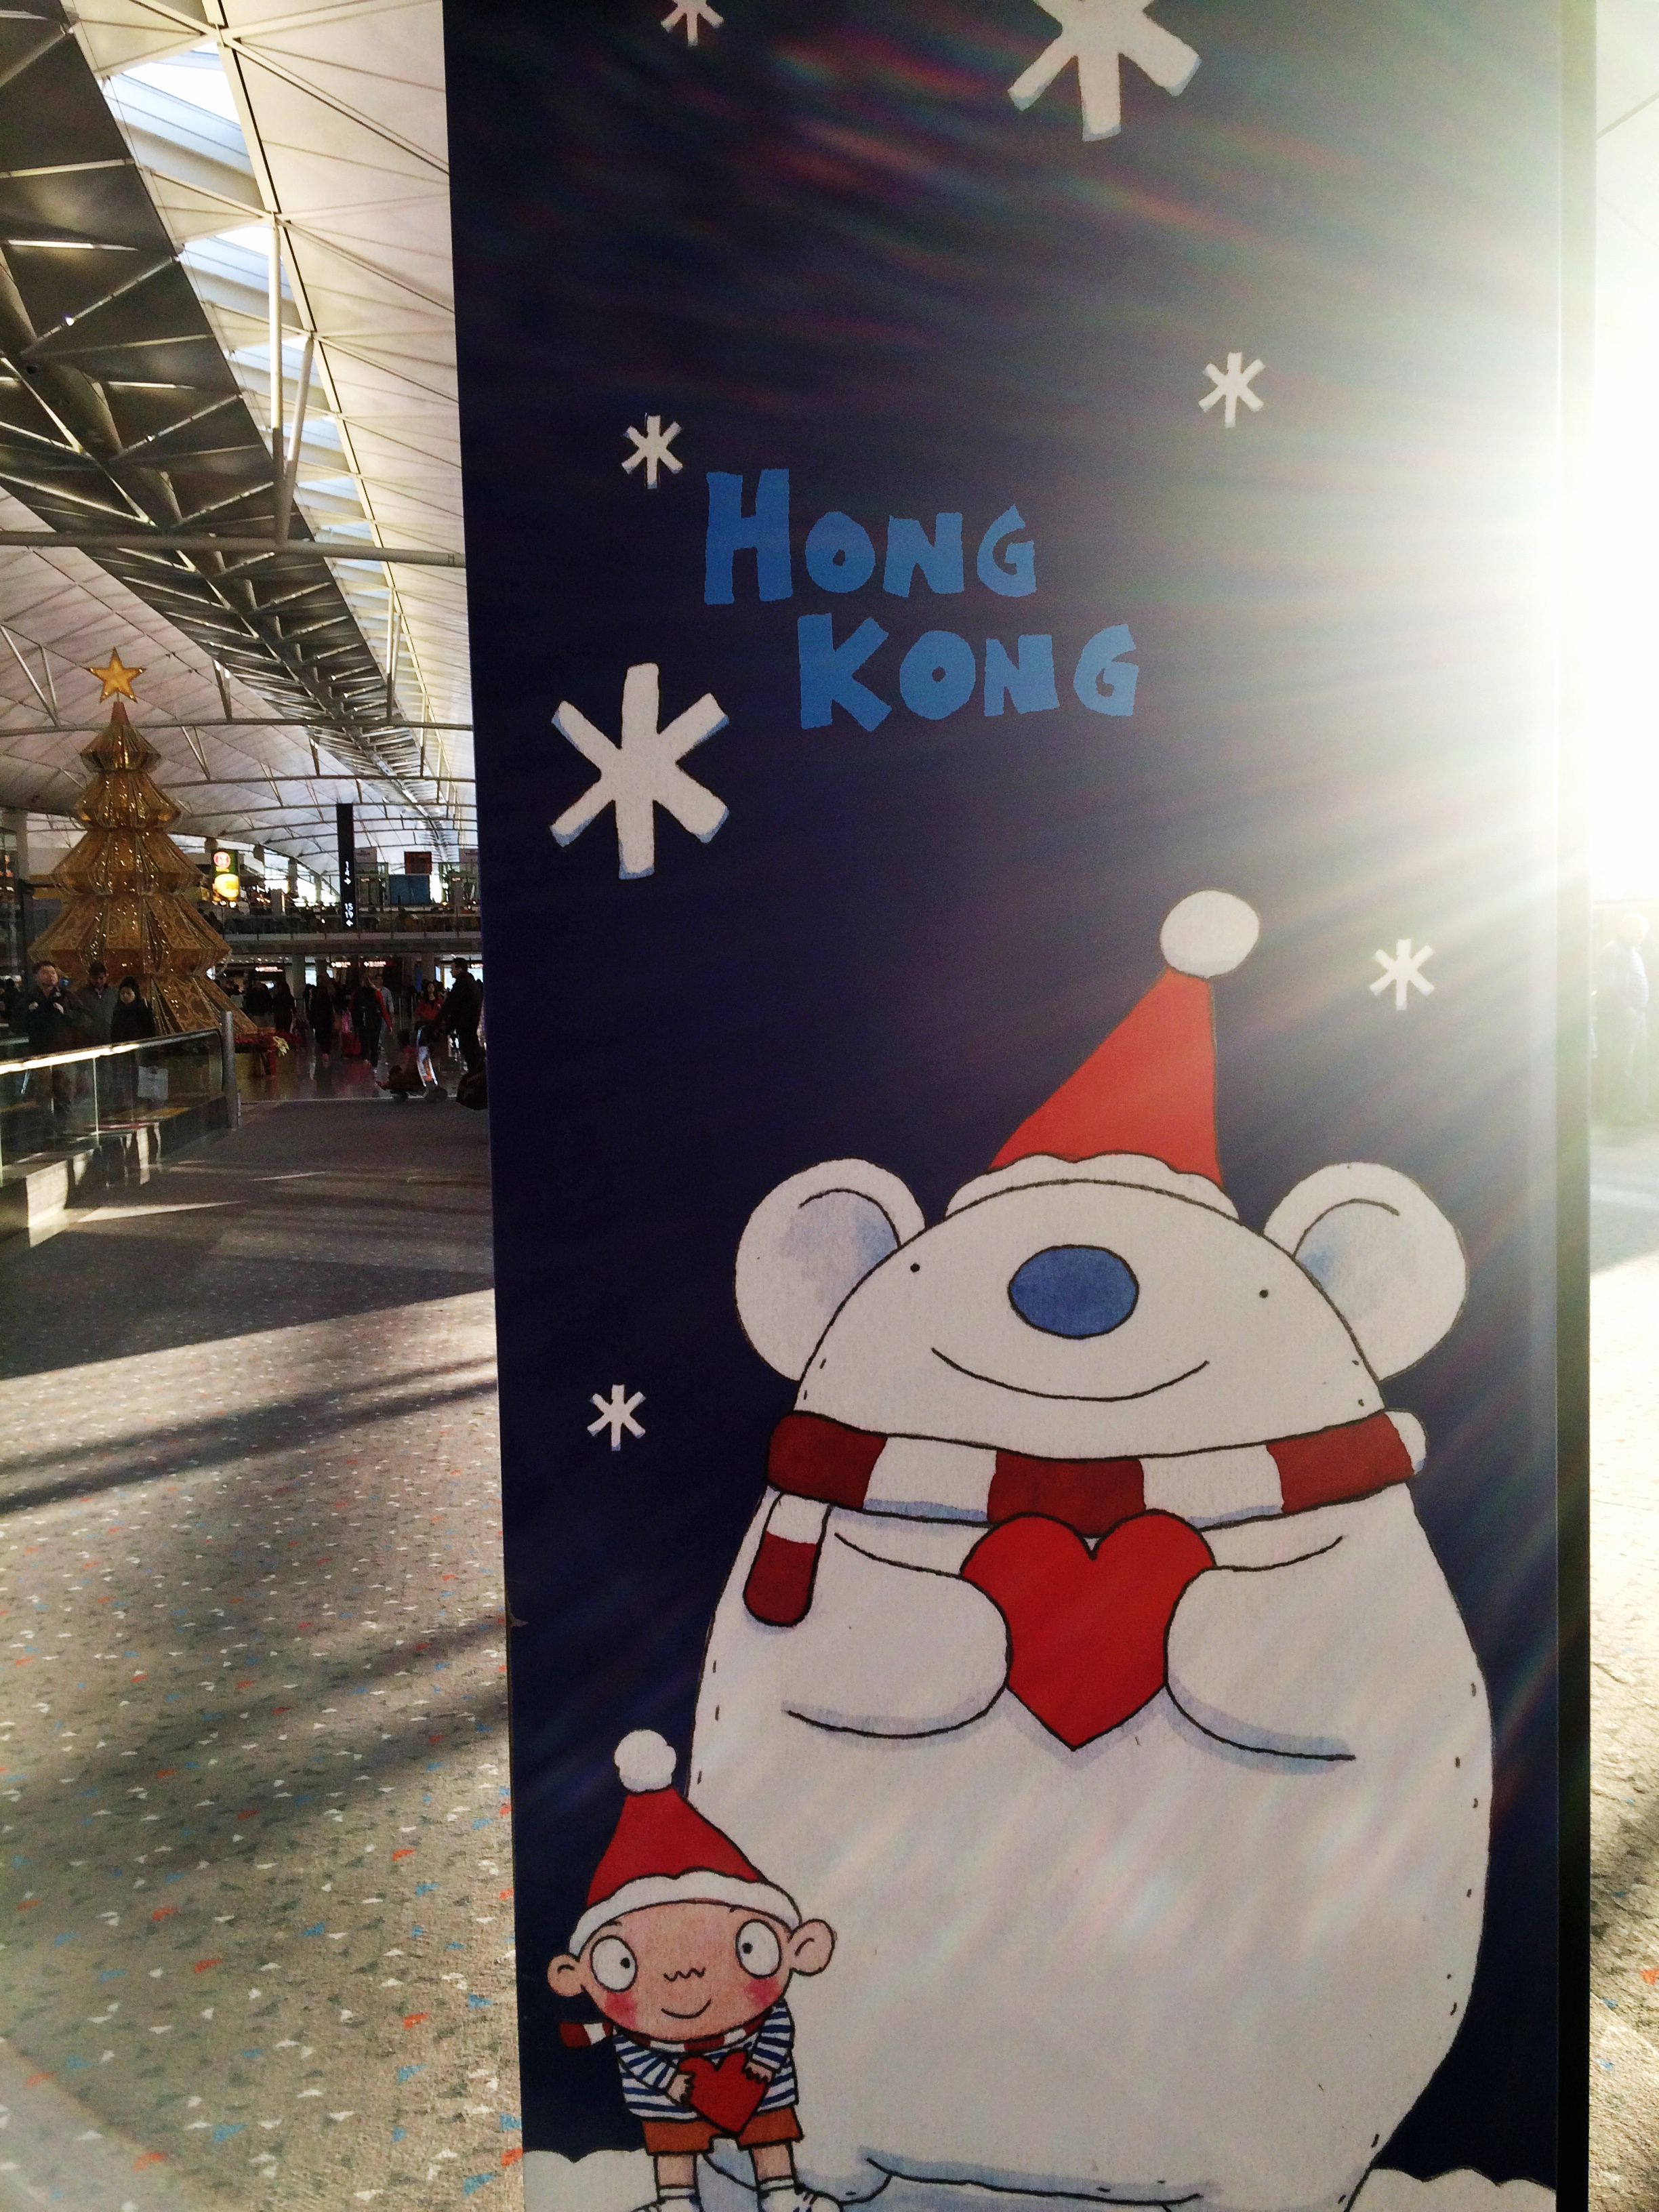 The gate signs at the airport in Hong Kong were festive and adorable.